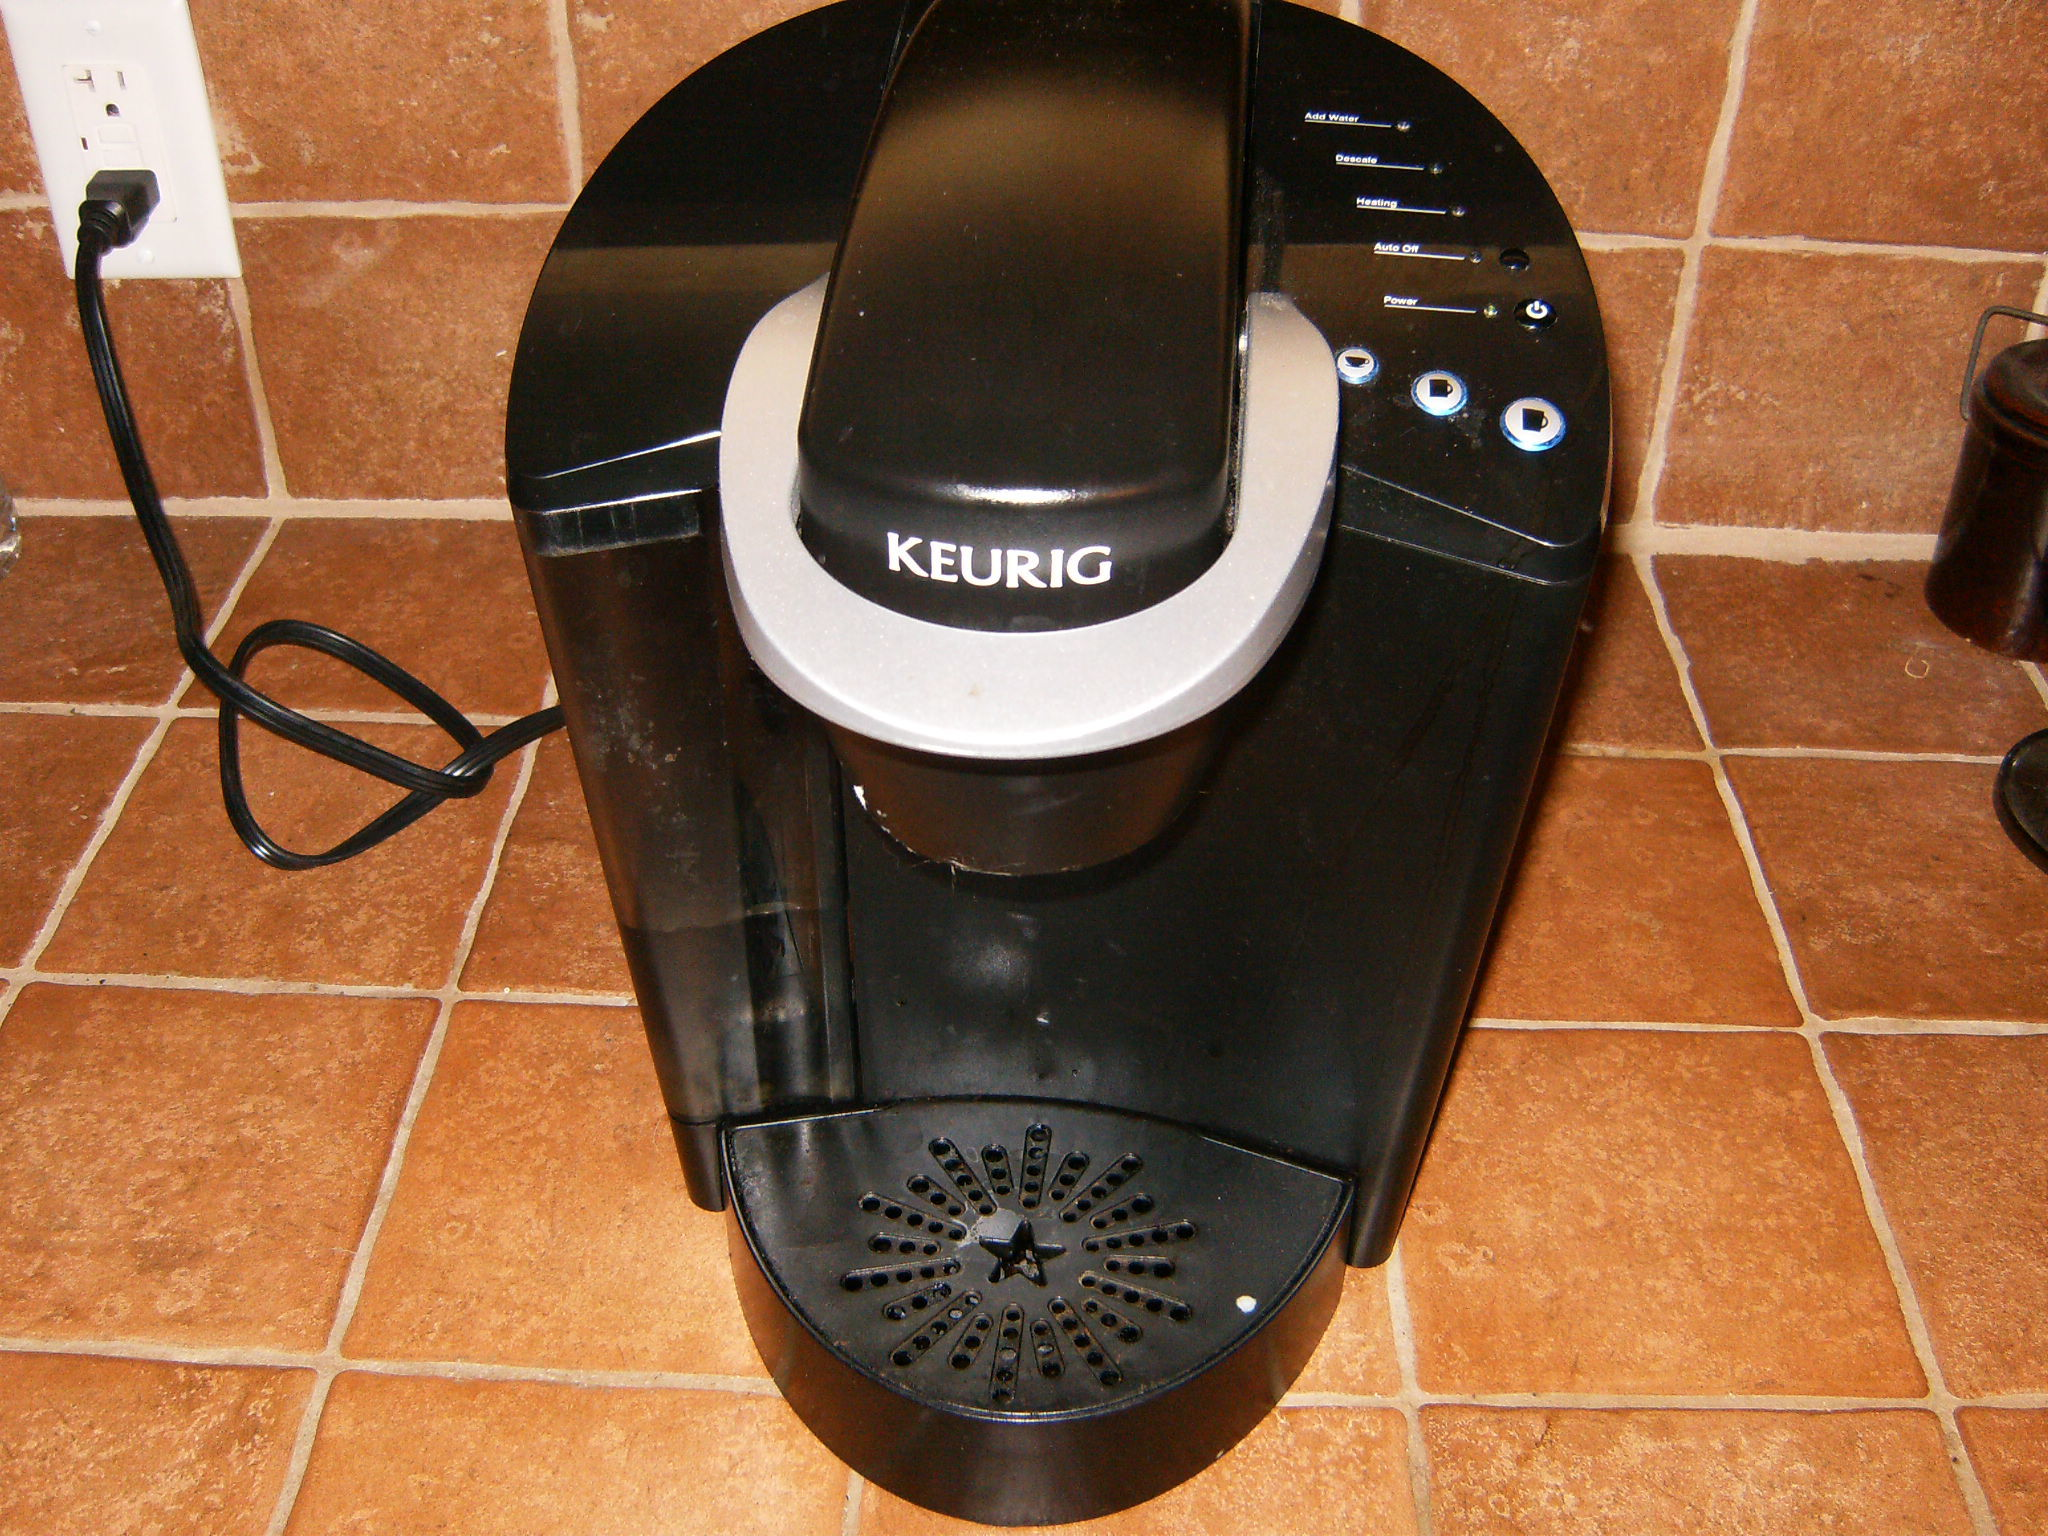 how to open and clean keurig coffee maker